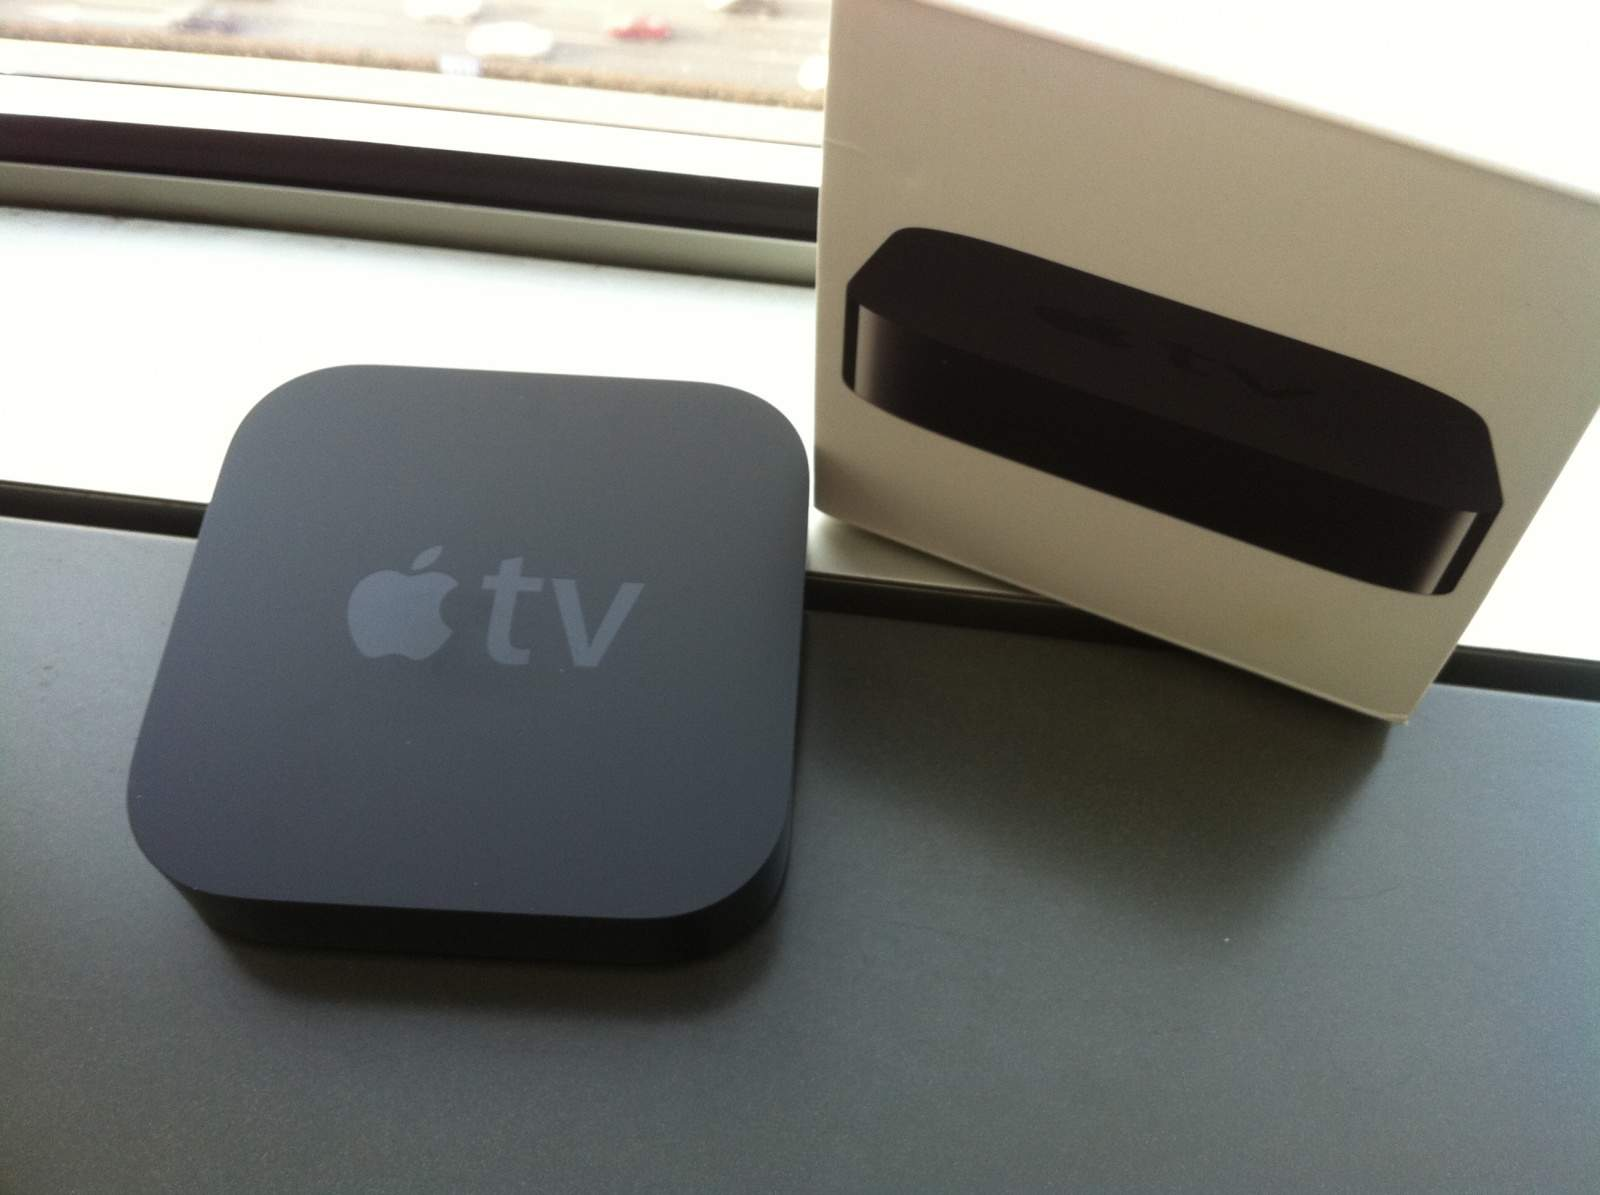 9 practical uses for your obsolete Apple TV